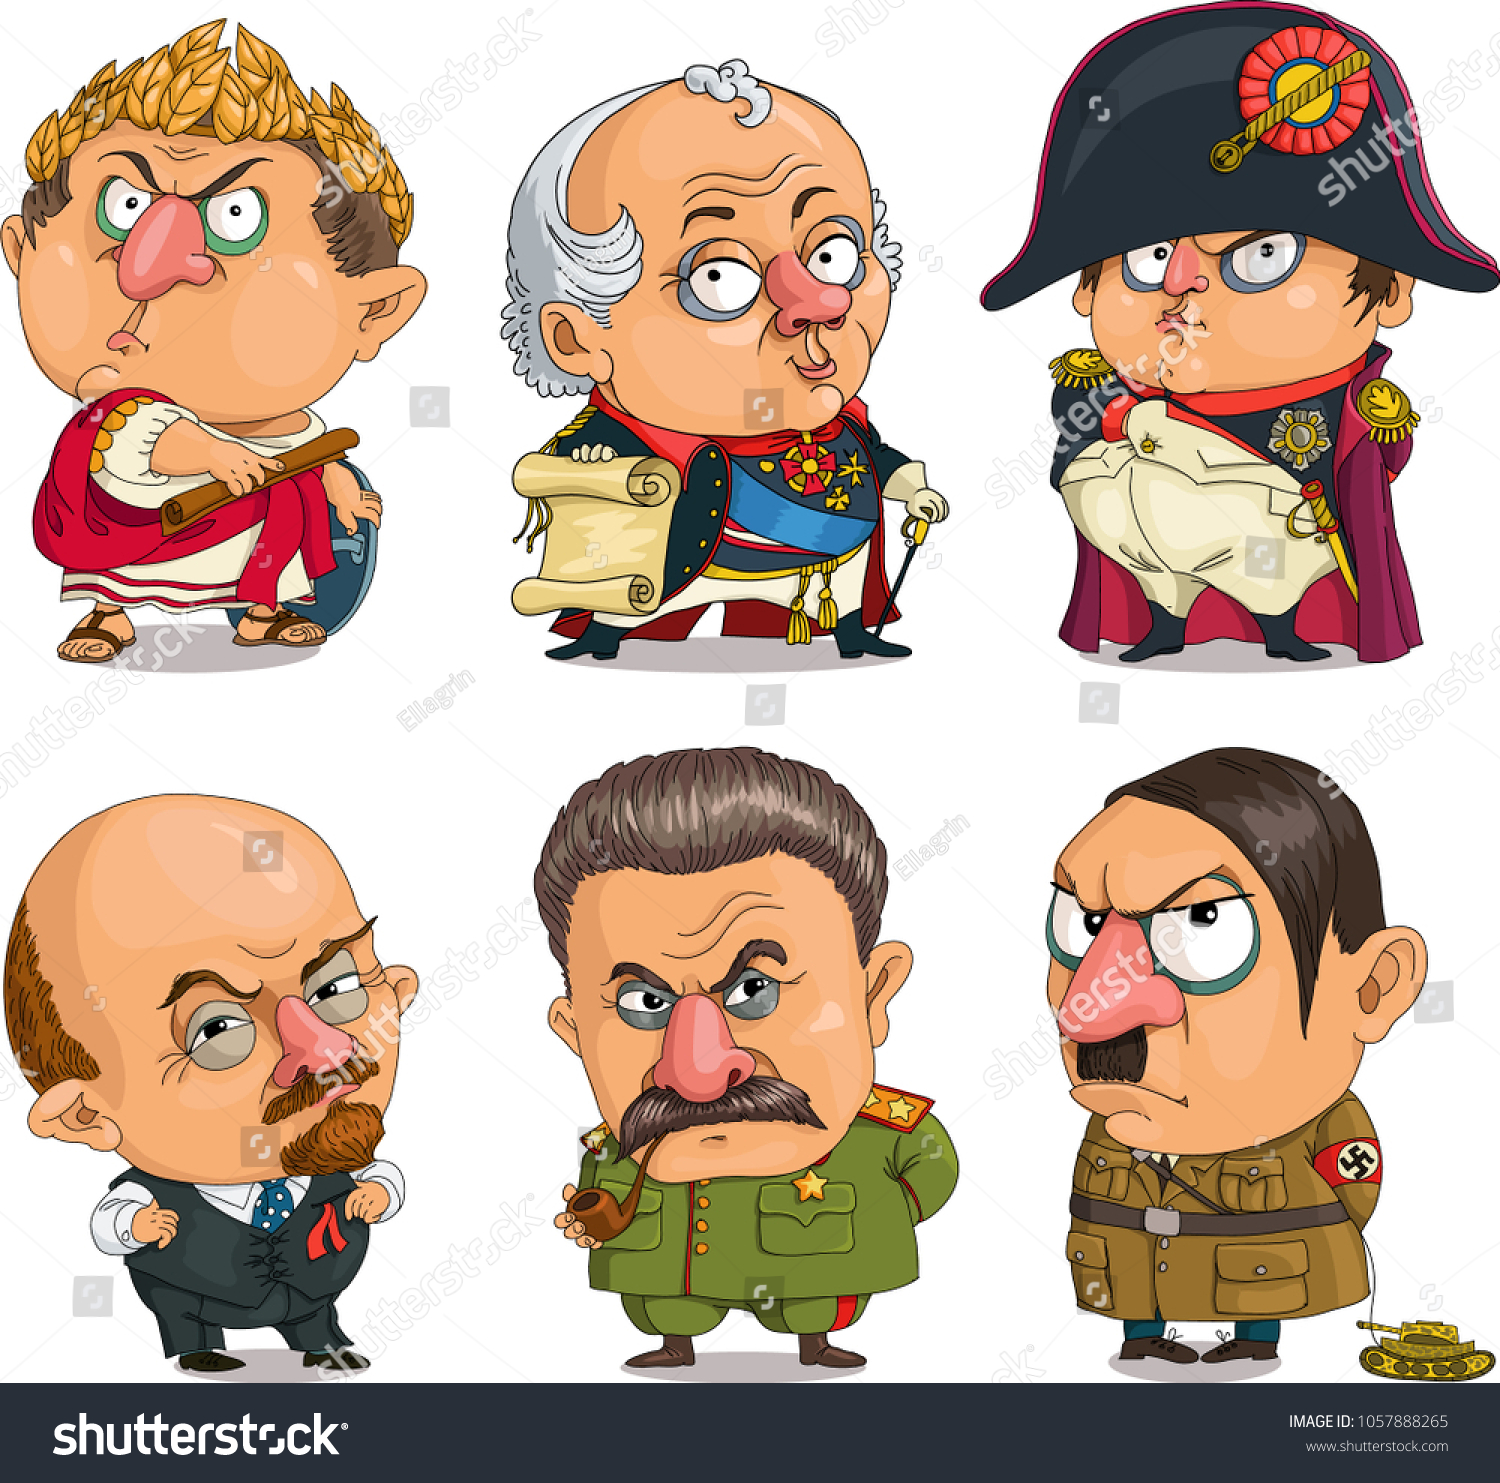 The comic caricature. Vector. Travesty cartoon. Characters.  Isolated objects. A set of famous historical leaders. The generals. Suvorov, Napoleon, Caesar, Lenin, Stalin, Hitler.